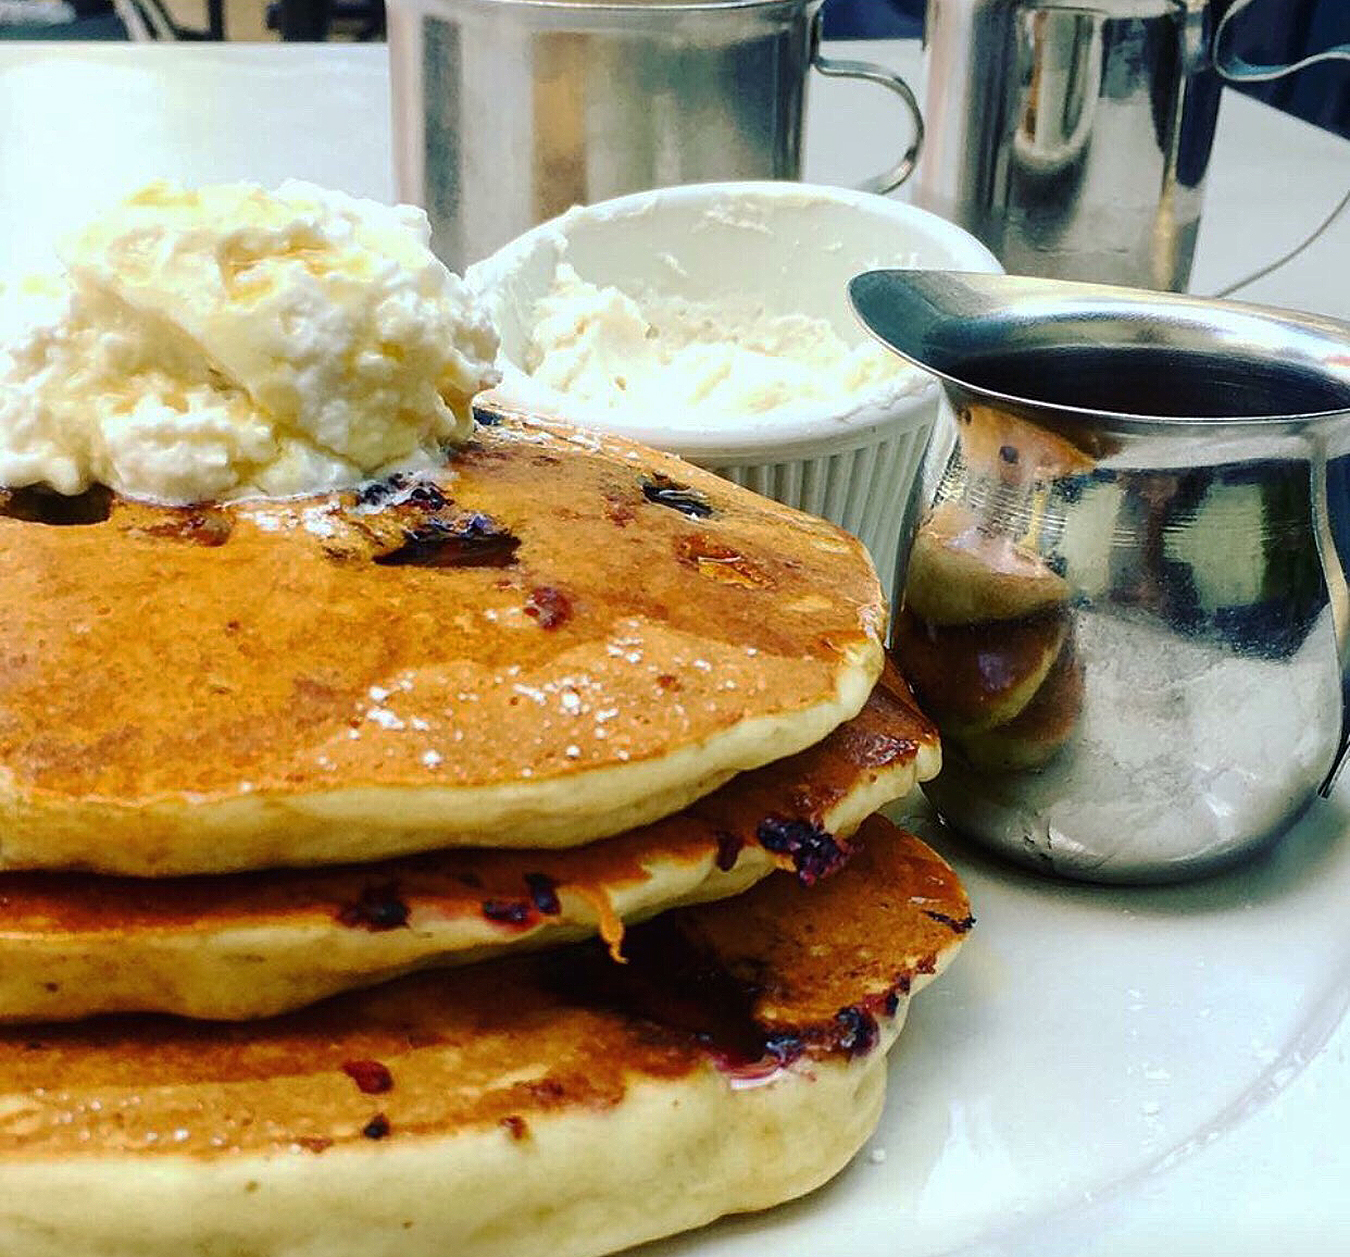 Morning_Glory_Diner_breakfast_pancakes_butter_syrup